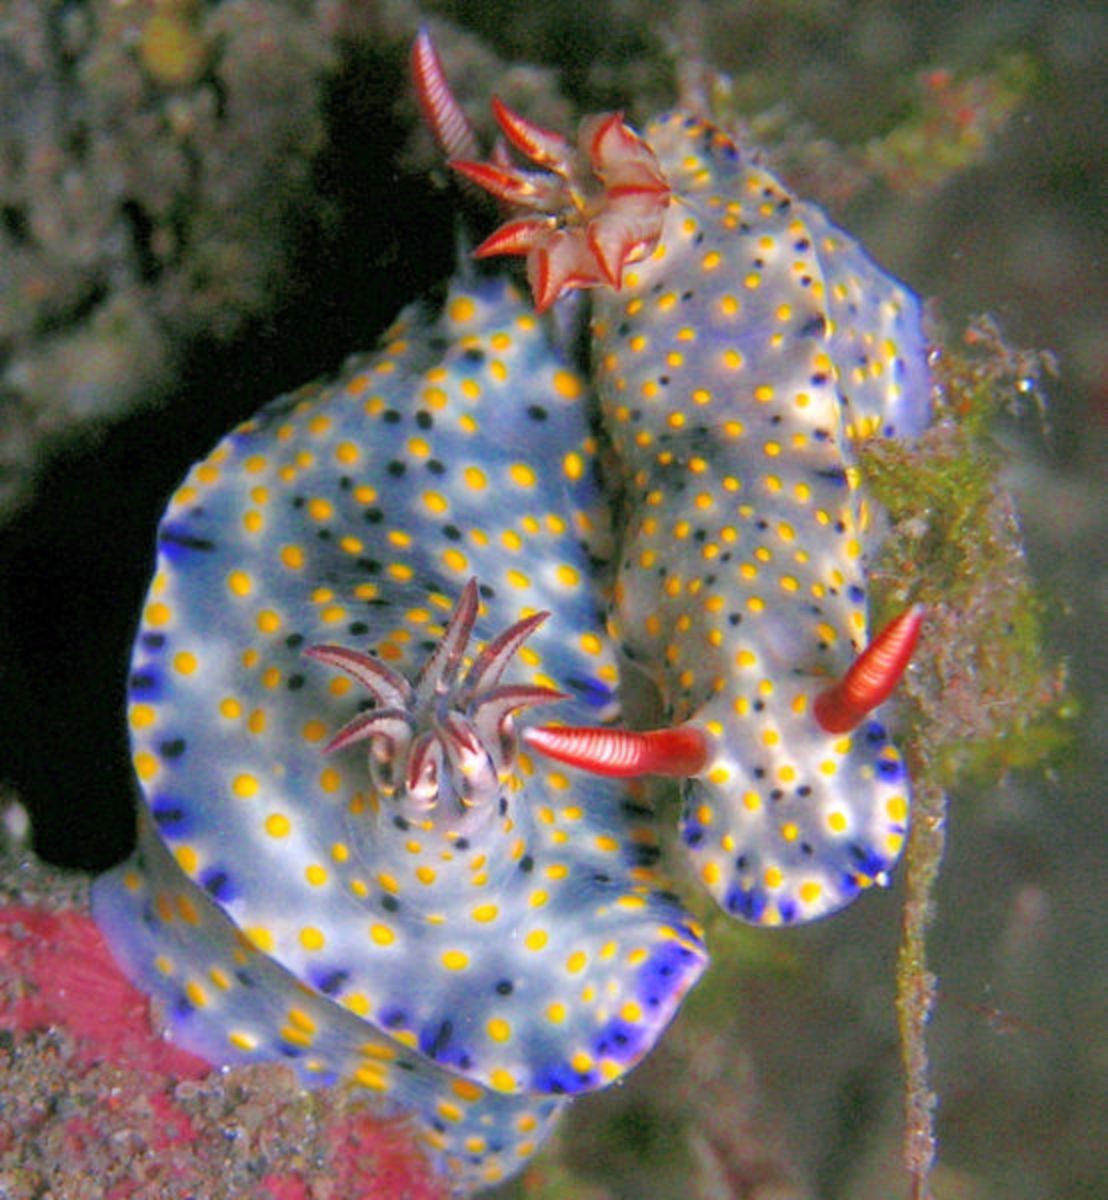 Hypselodoris infucata is a species of colorful sea slug or dorid nudibranch, a marine opisthobranch gastropod mollusk in the family Chromodorididae